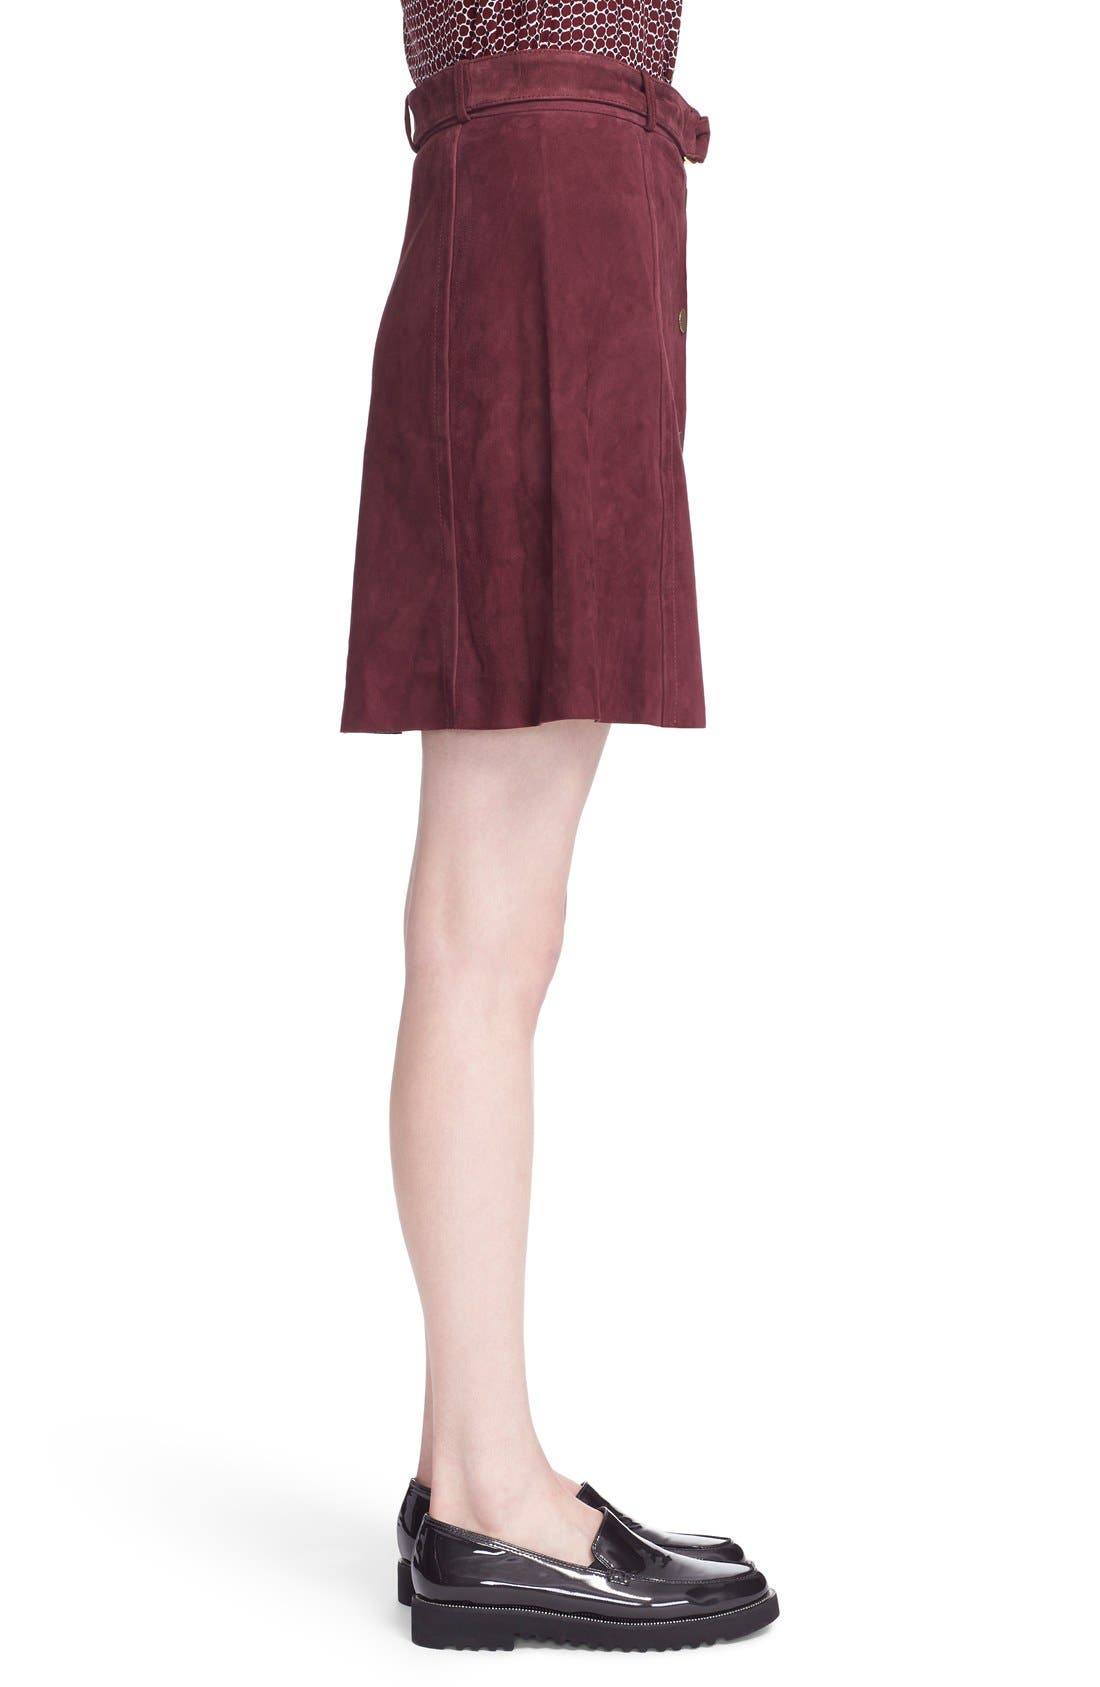 belted suede a-line skirt,                             Alternate thumbnail 4, color,                             619